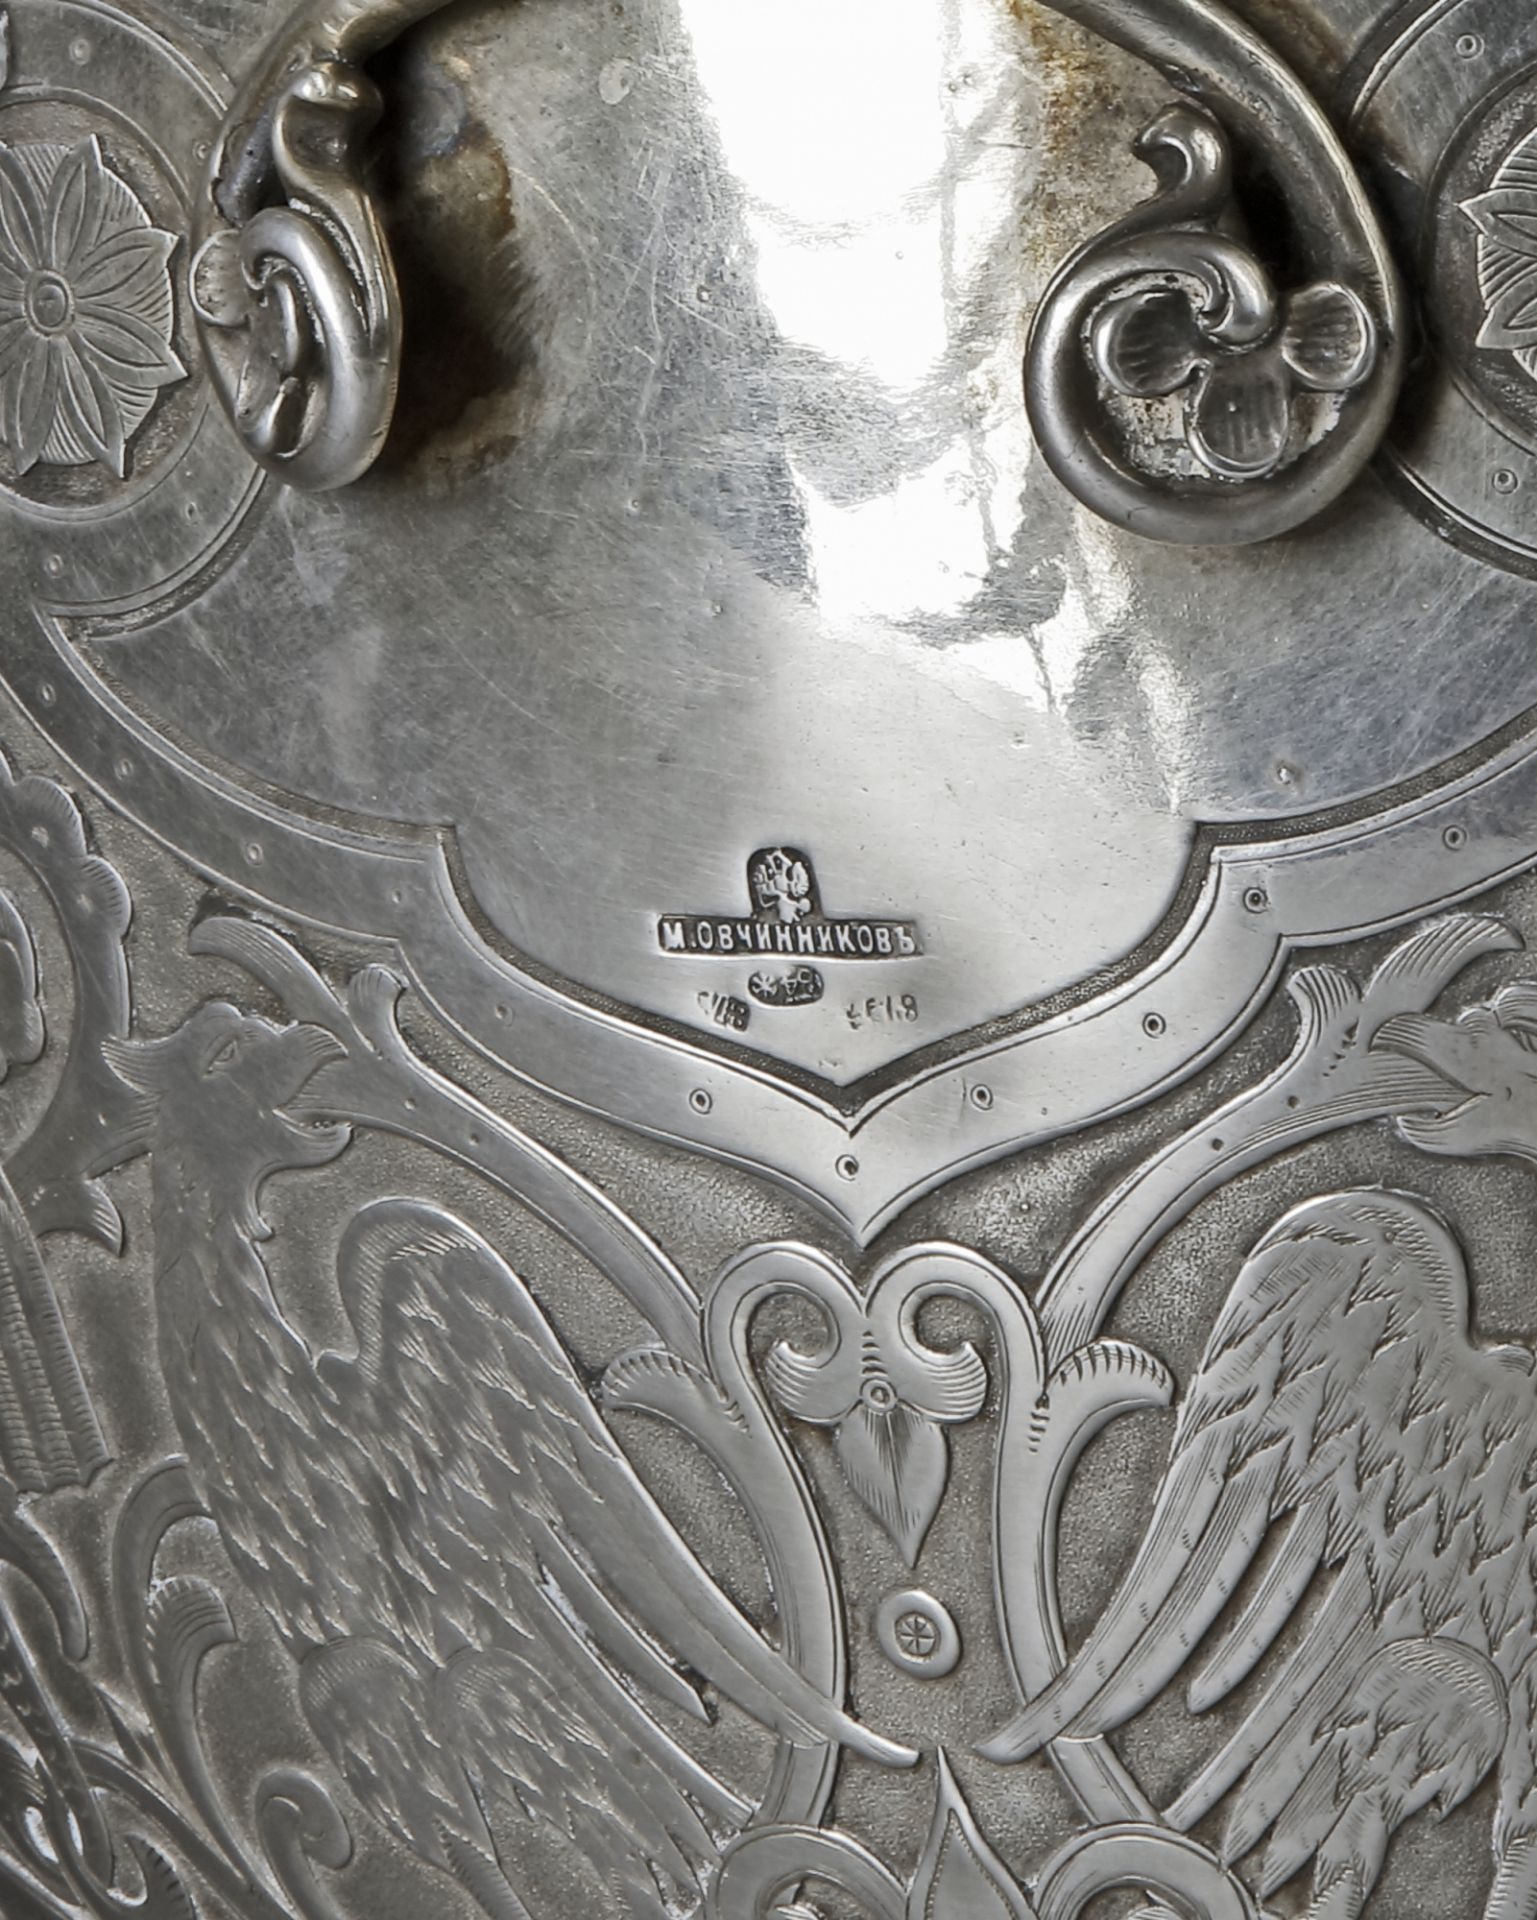 A LARGE RUSSIAN IMPERIAL SILVER KOVSCH BOWL, LATE 19TH CENTURY - Image 3 of 8